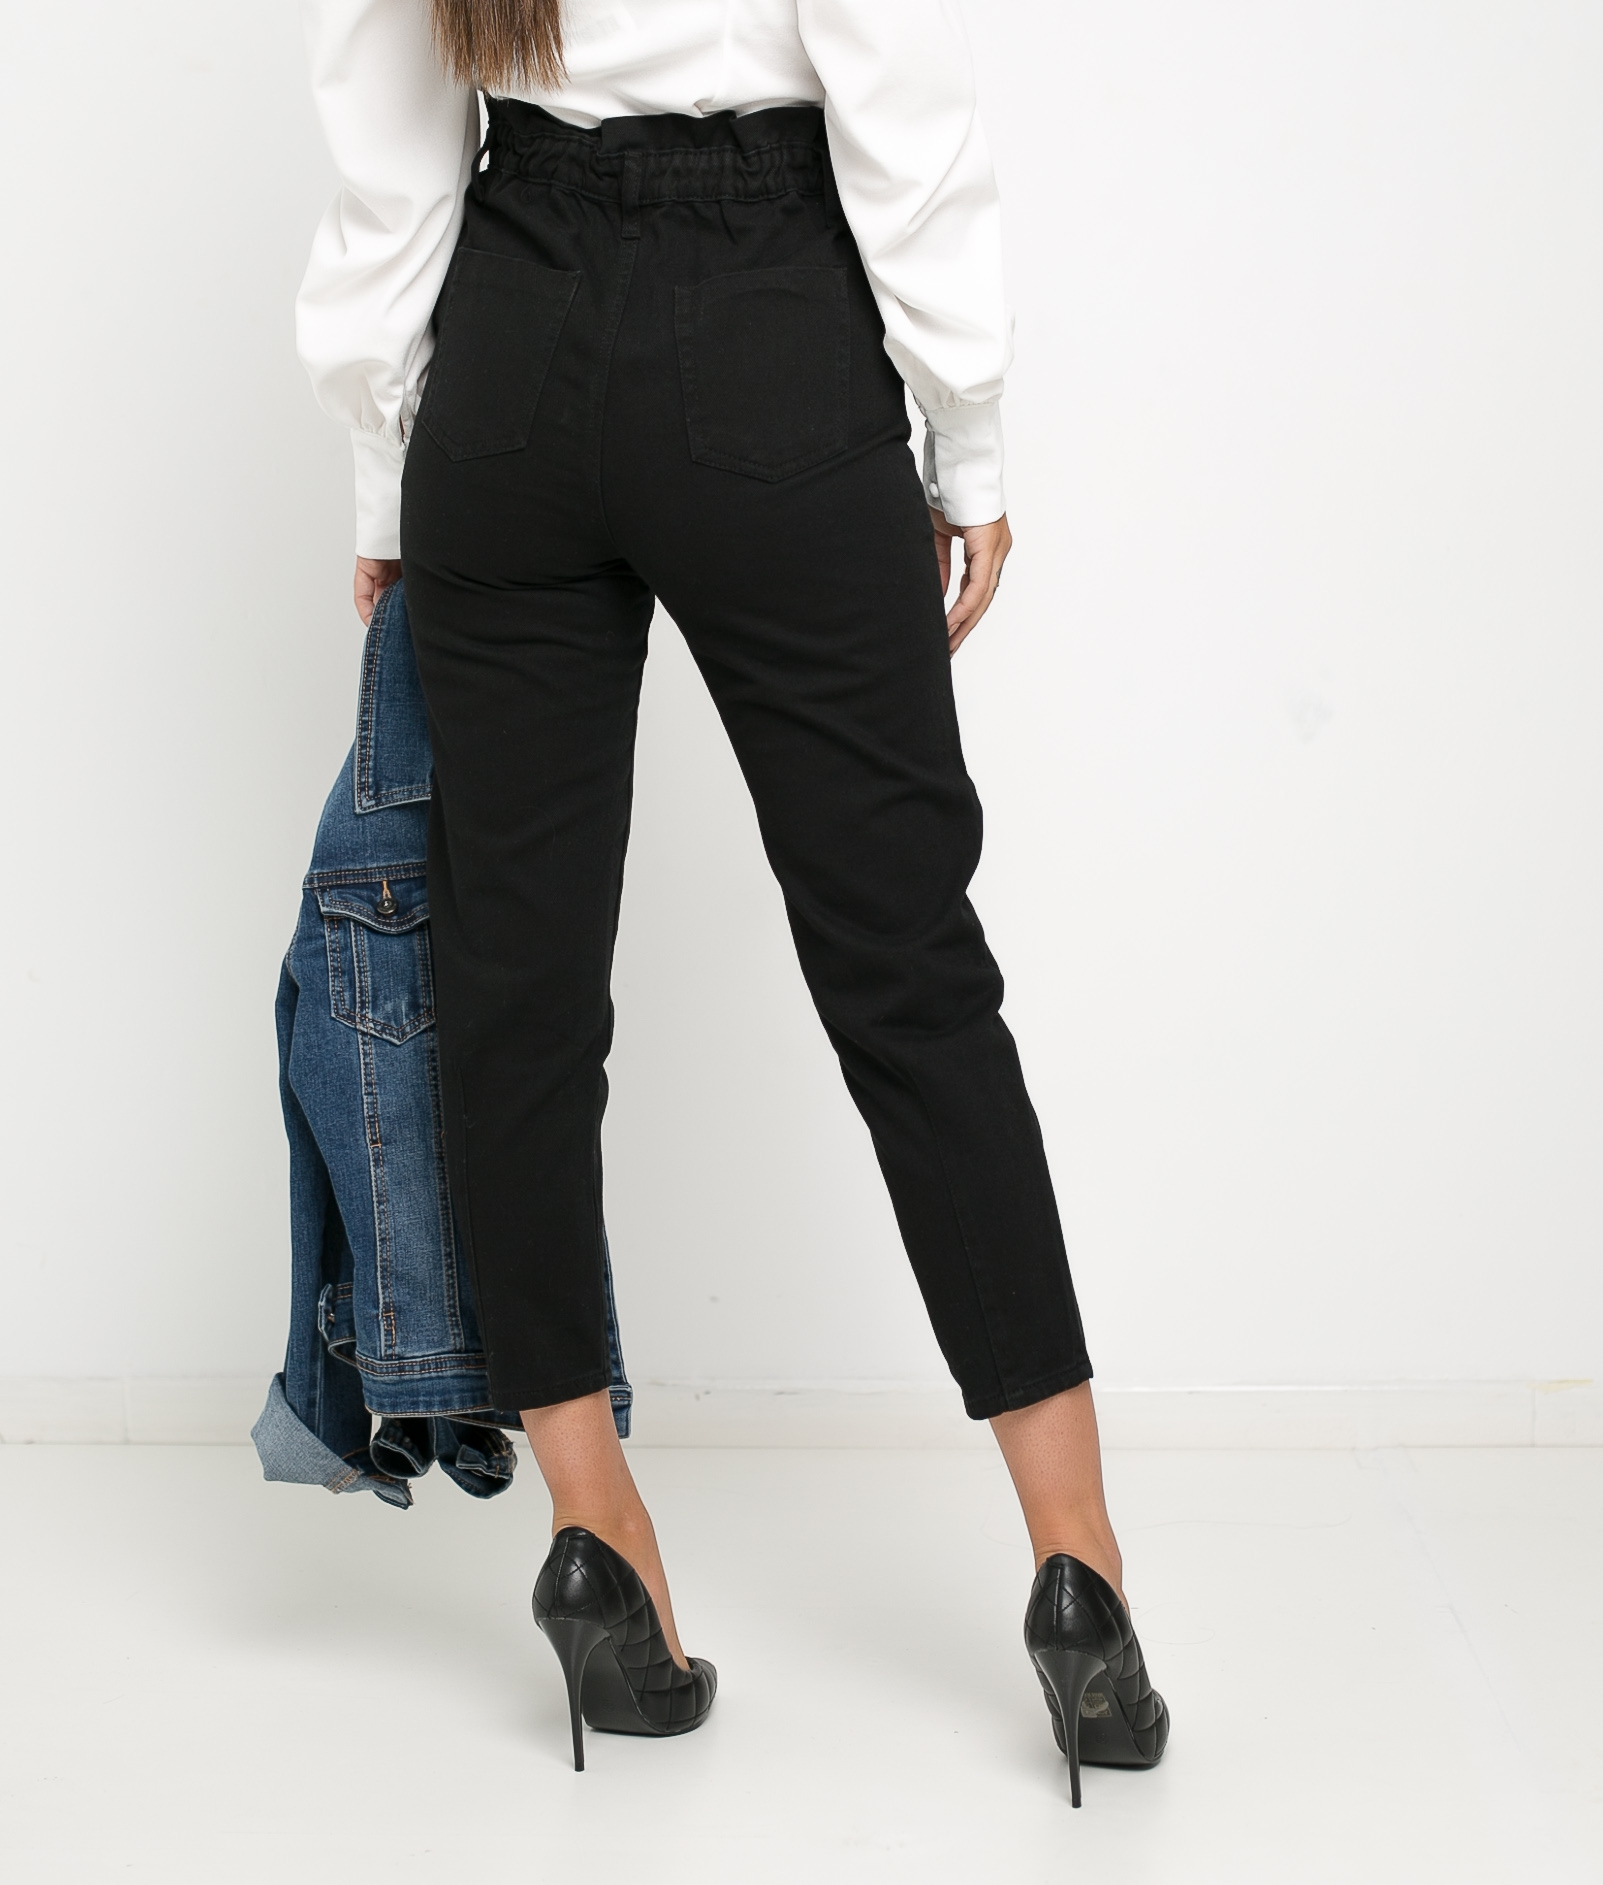 CLEVE TROUSERS - BLACK